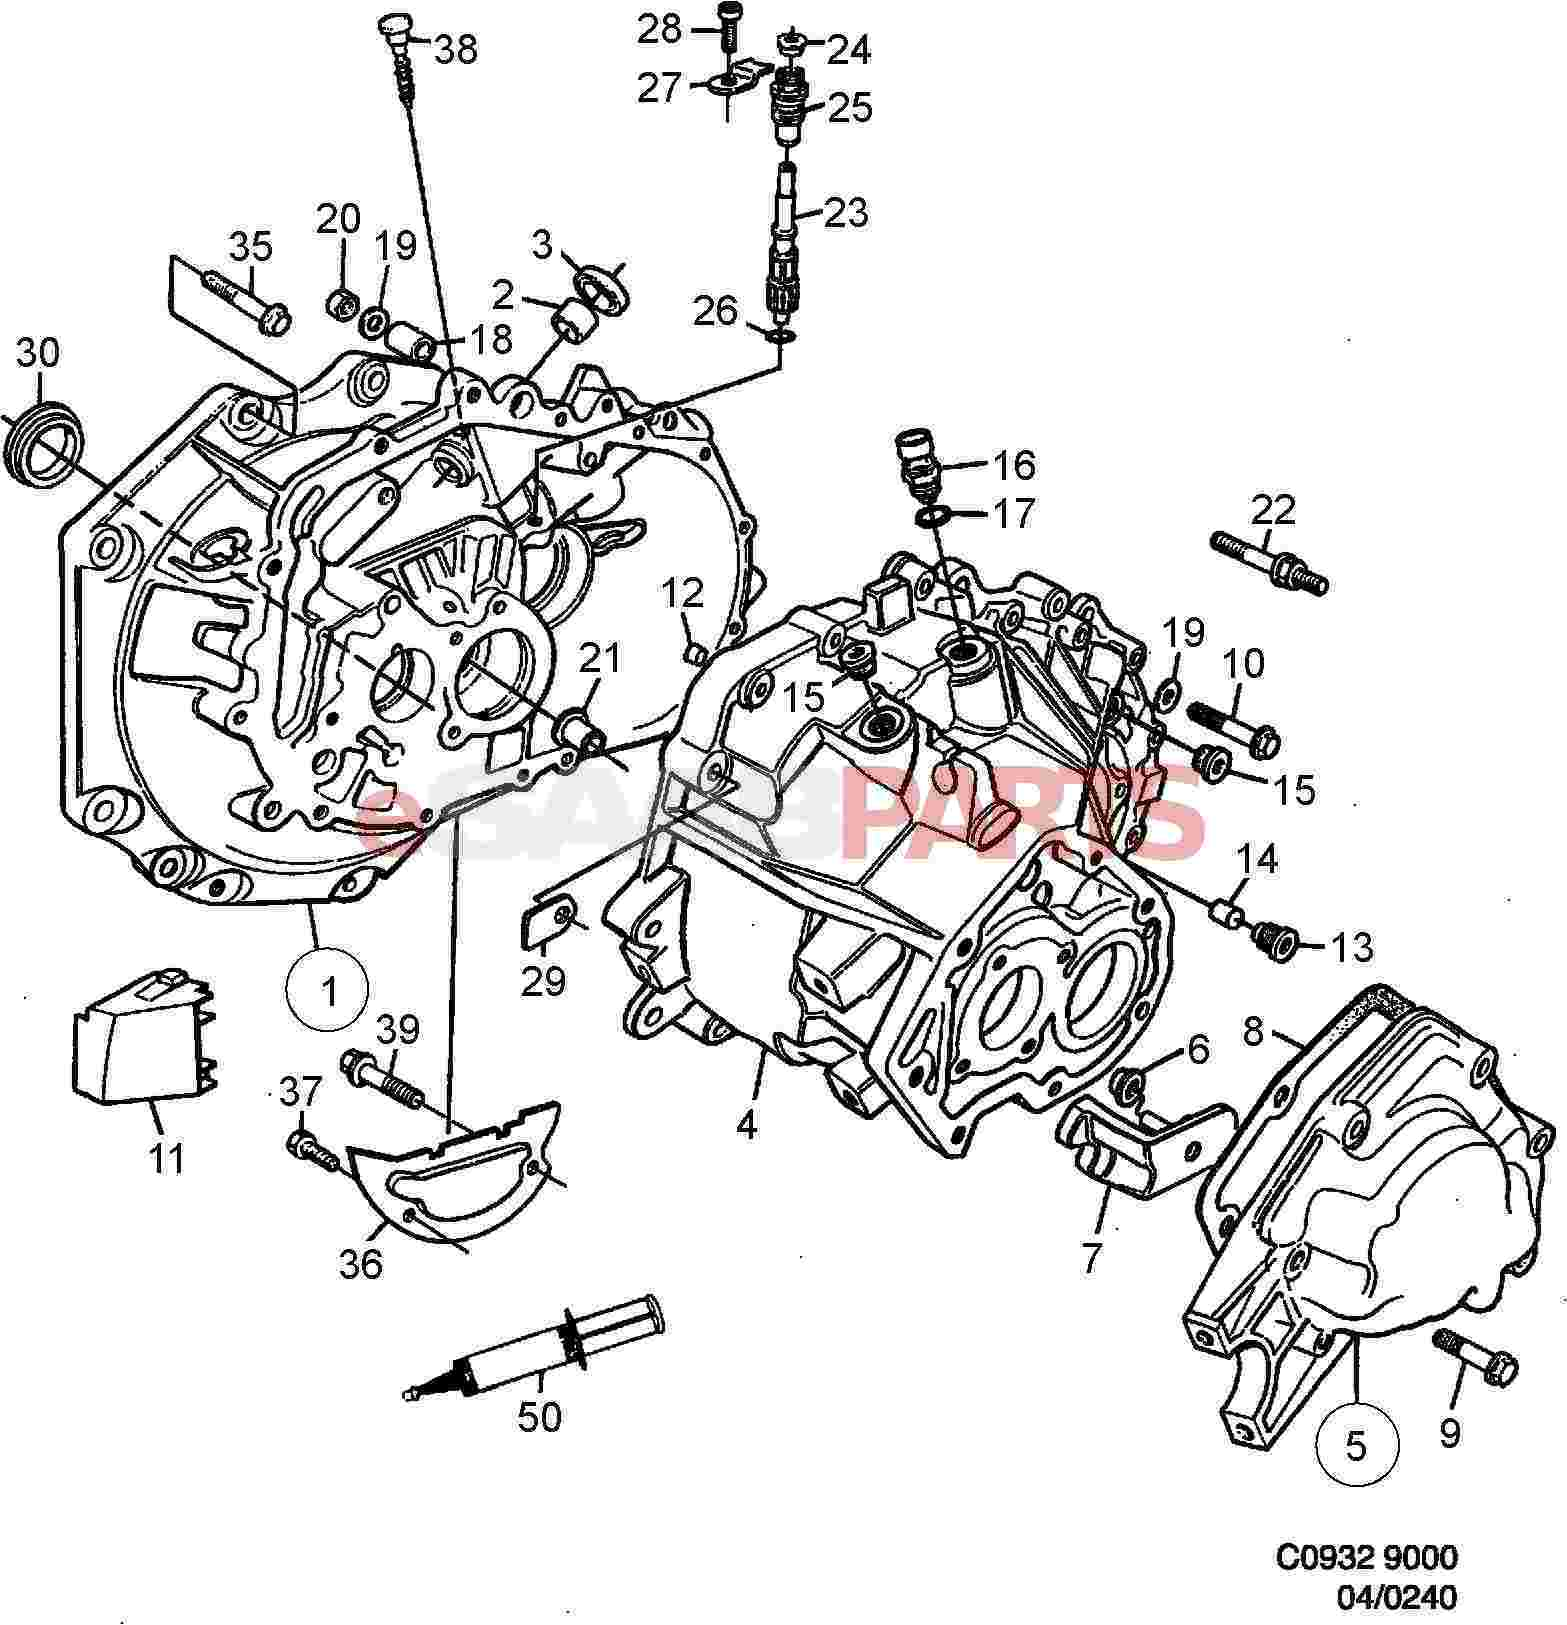 2001 Chrysler Concorde Parts Catalog also 340n3 1999 Honda Unlock Fuses The Keyless Entry Module also P 0996b43f80cadd60 as well 2008 Saab 9 3 Manual Transmission Diagram as well 2000 Saab 9 3 Vacuum Diagram. on 99 saab 9 5 fuse diagram